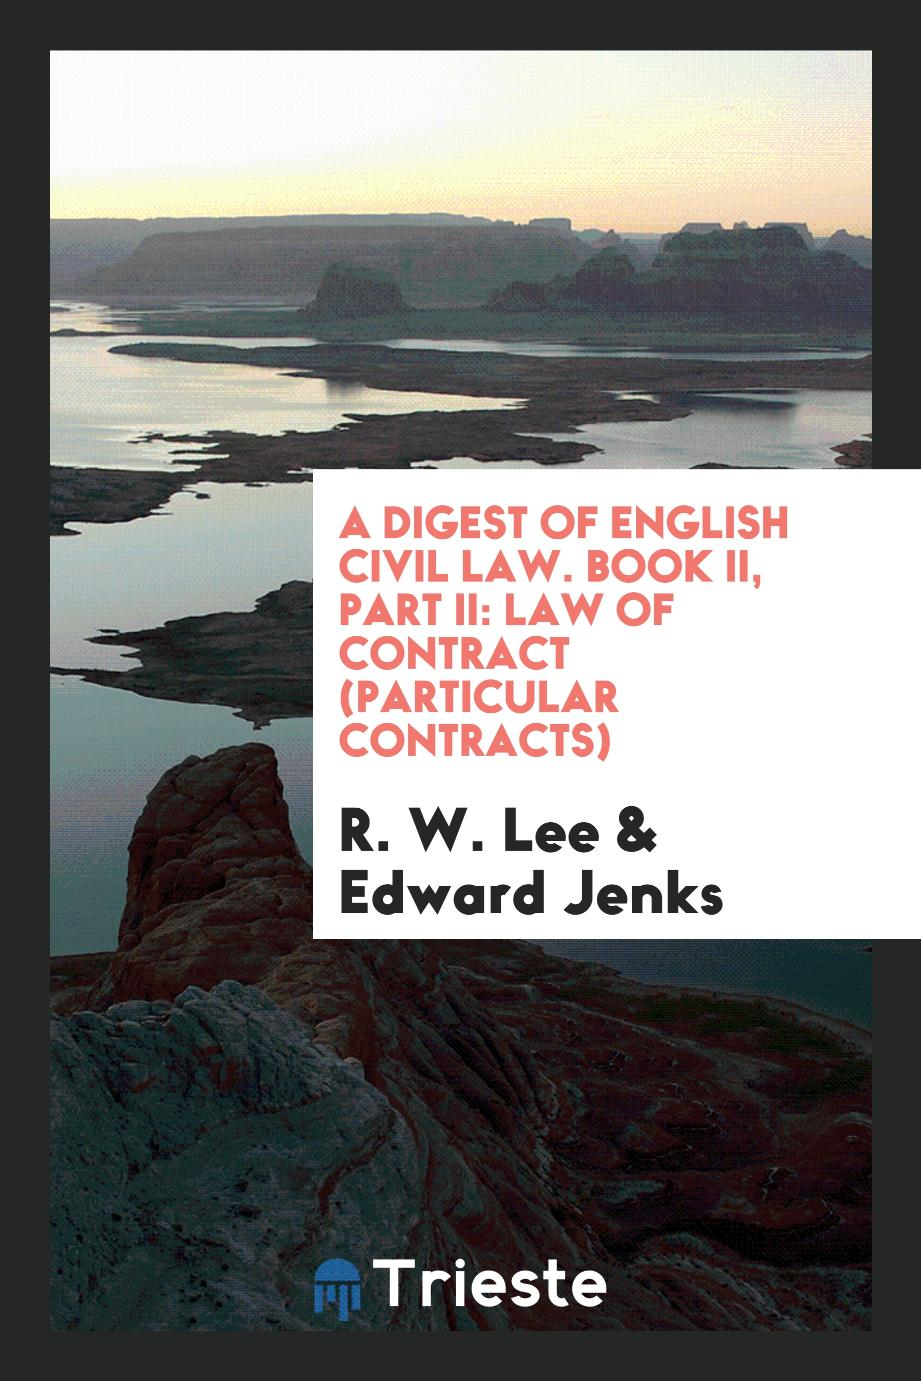 A Digest of English Civil Law. Book II, Part II: Law of Contract (Particular Contracts)